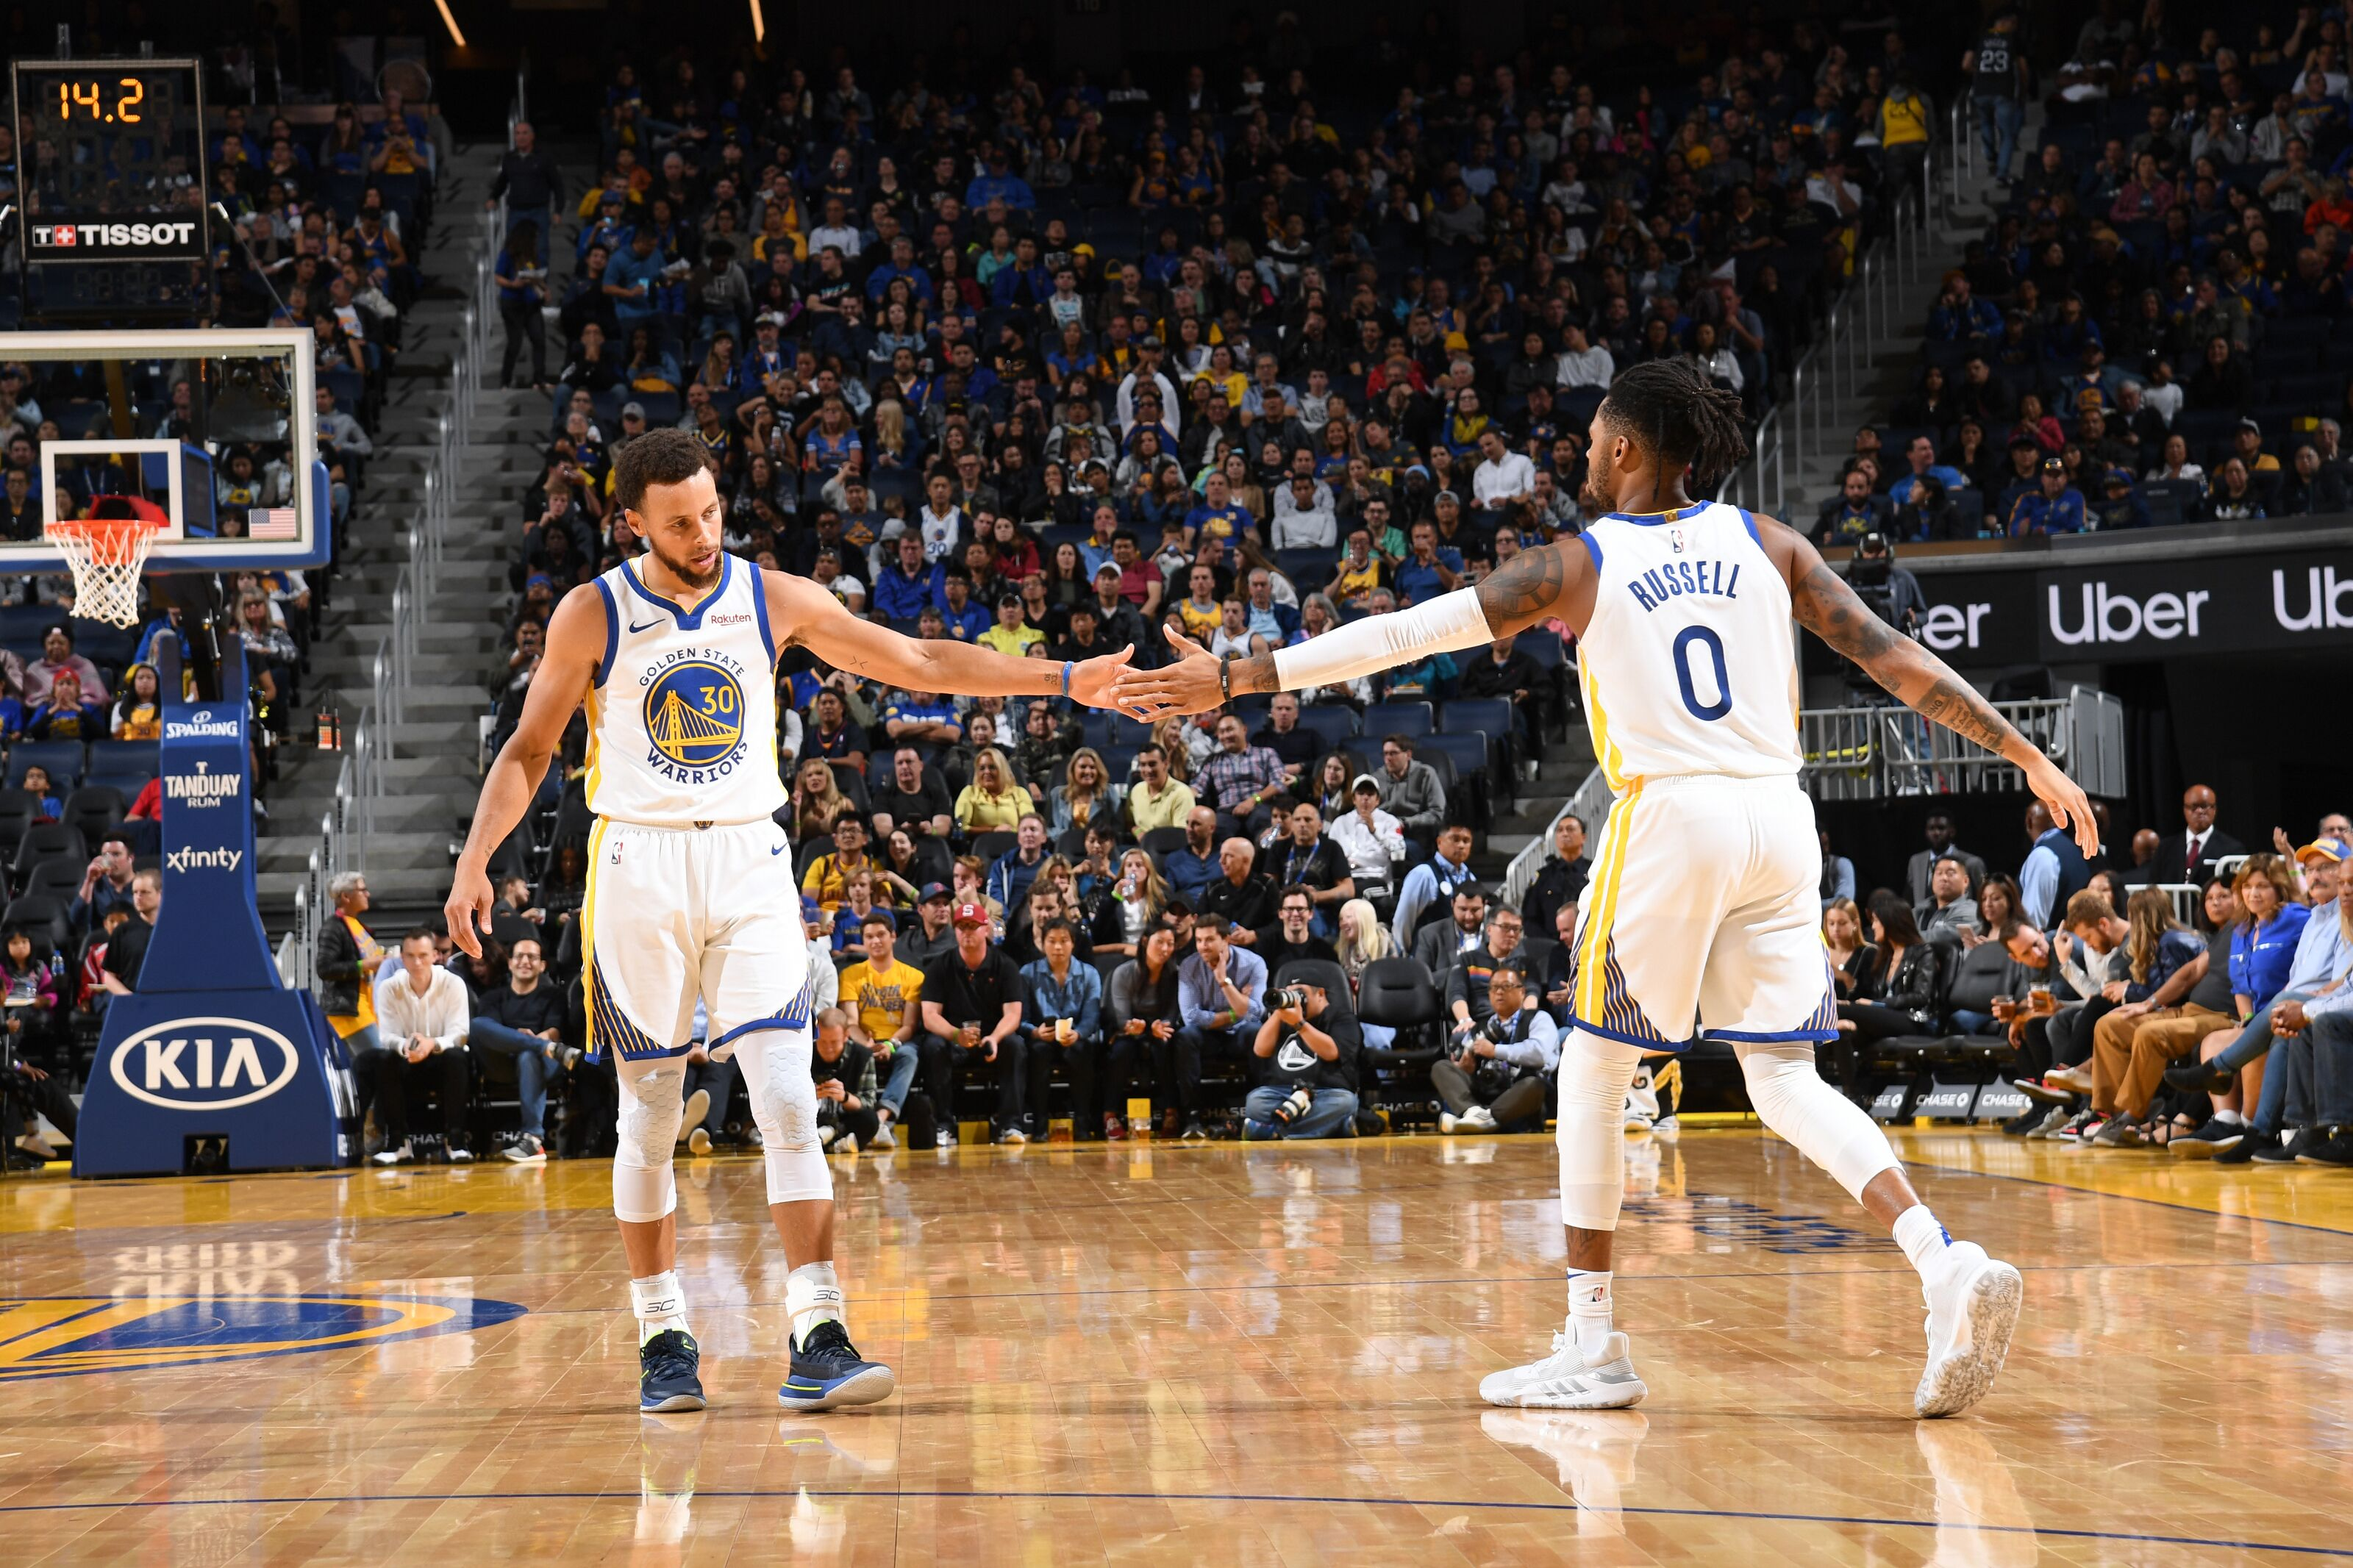 Golden State Warriors: Stephen Curry reminds us of his dominance vs. Wolves